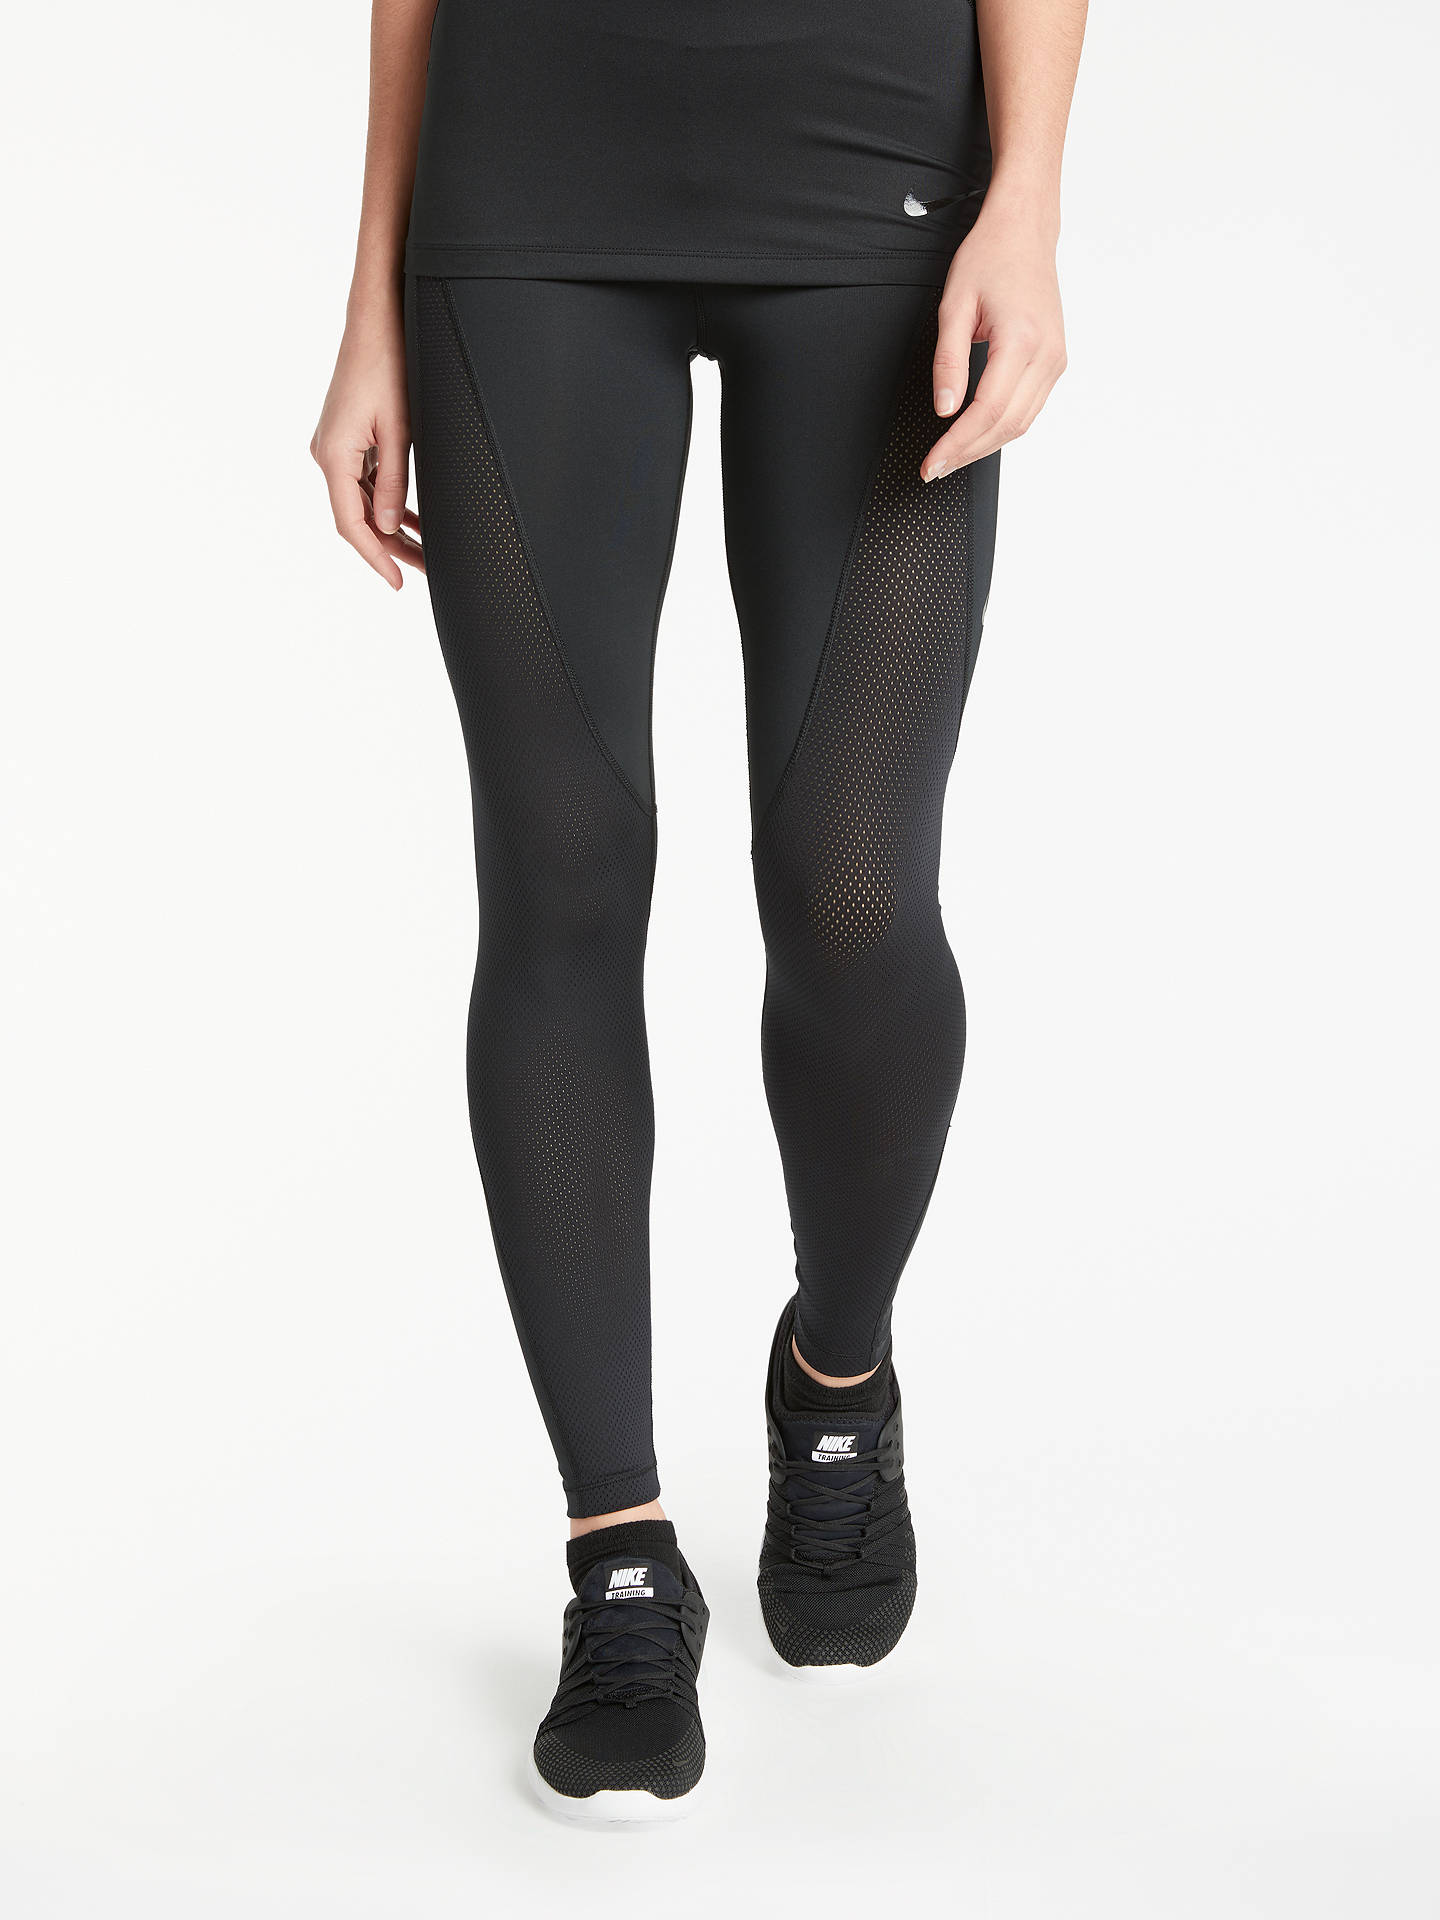 51d5254181200 Buy Nike Pro Hypercool Training Tights, Black, XS Online at johnlewis.com  ...